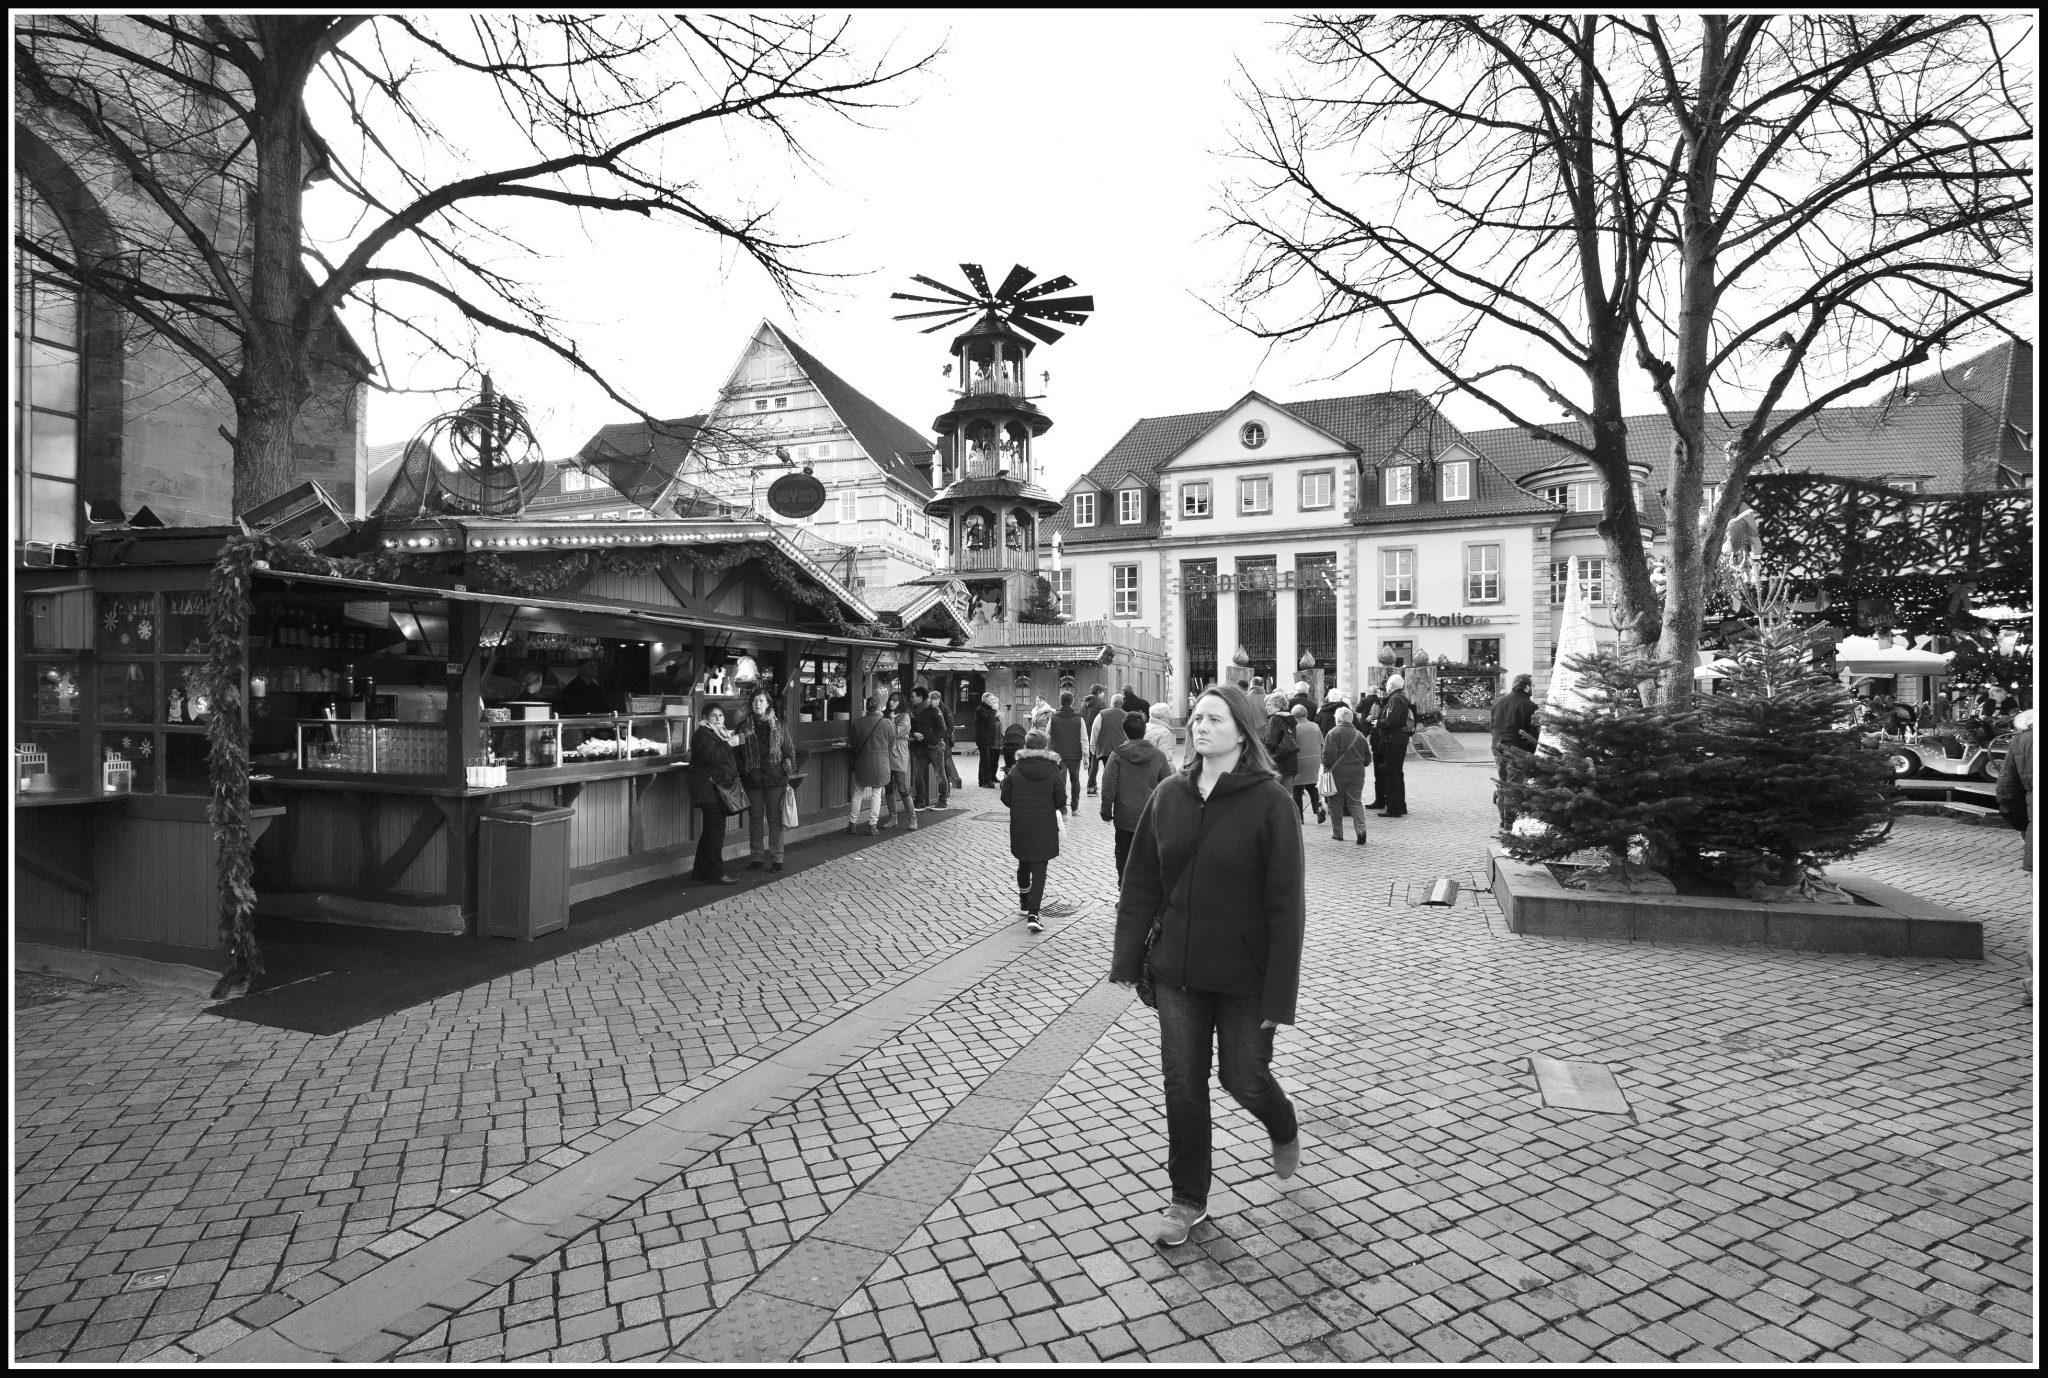 l1490032_m8-digital-camera_1-180-sek-bei-f-67__iso-320_black-white-projects-k